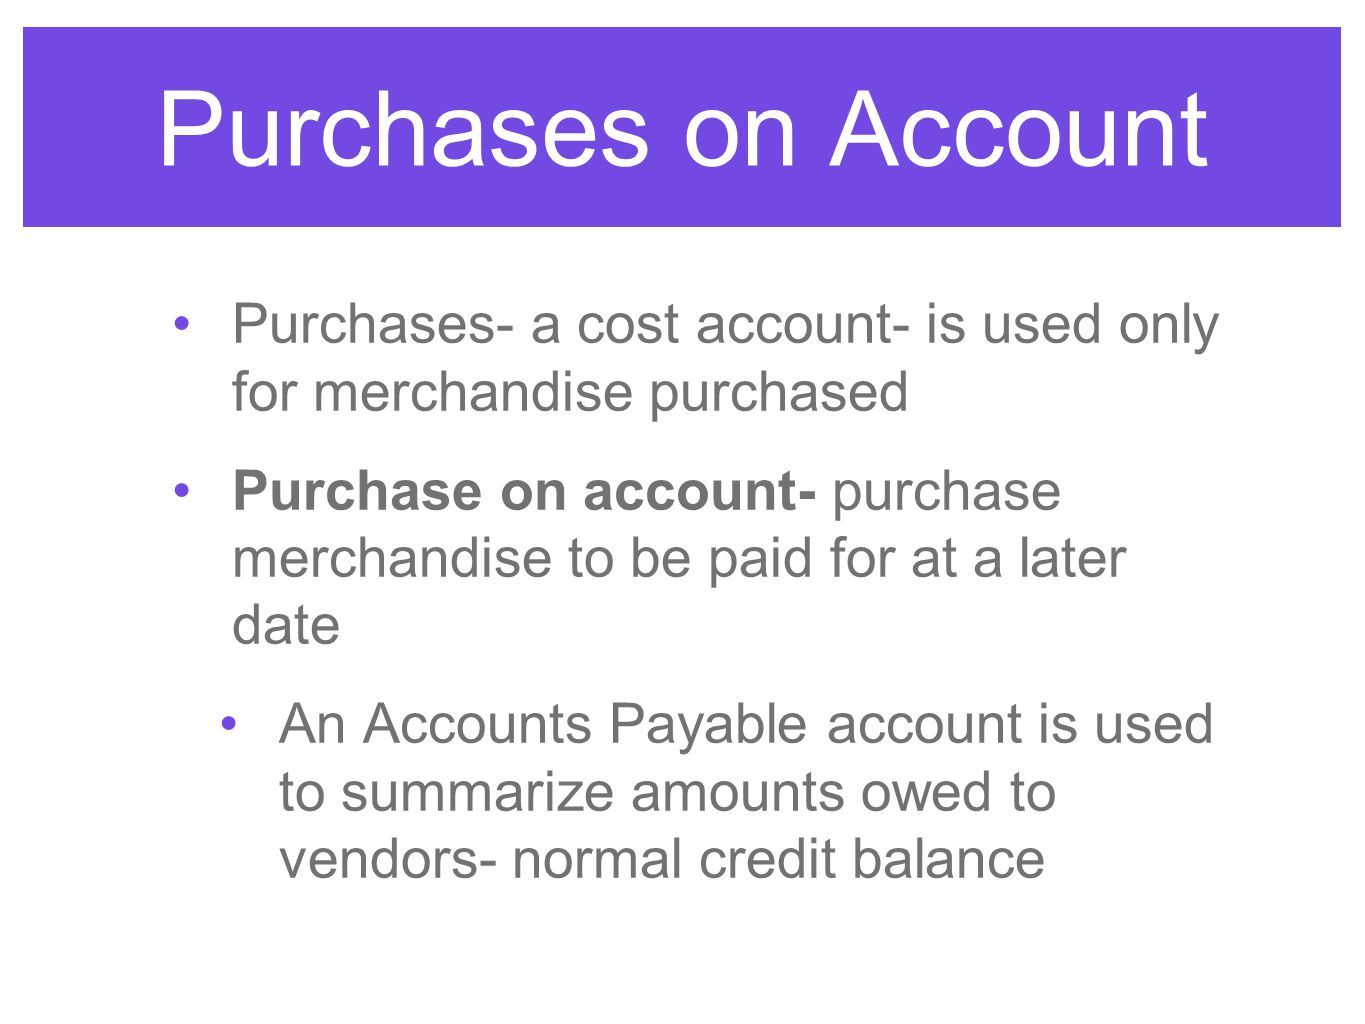 Purchases on Account Purchases- a cost account- is used only for merchandise purchased.